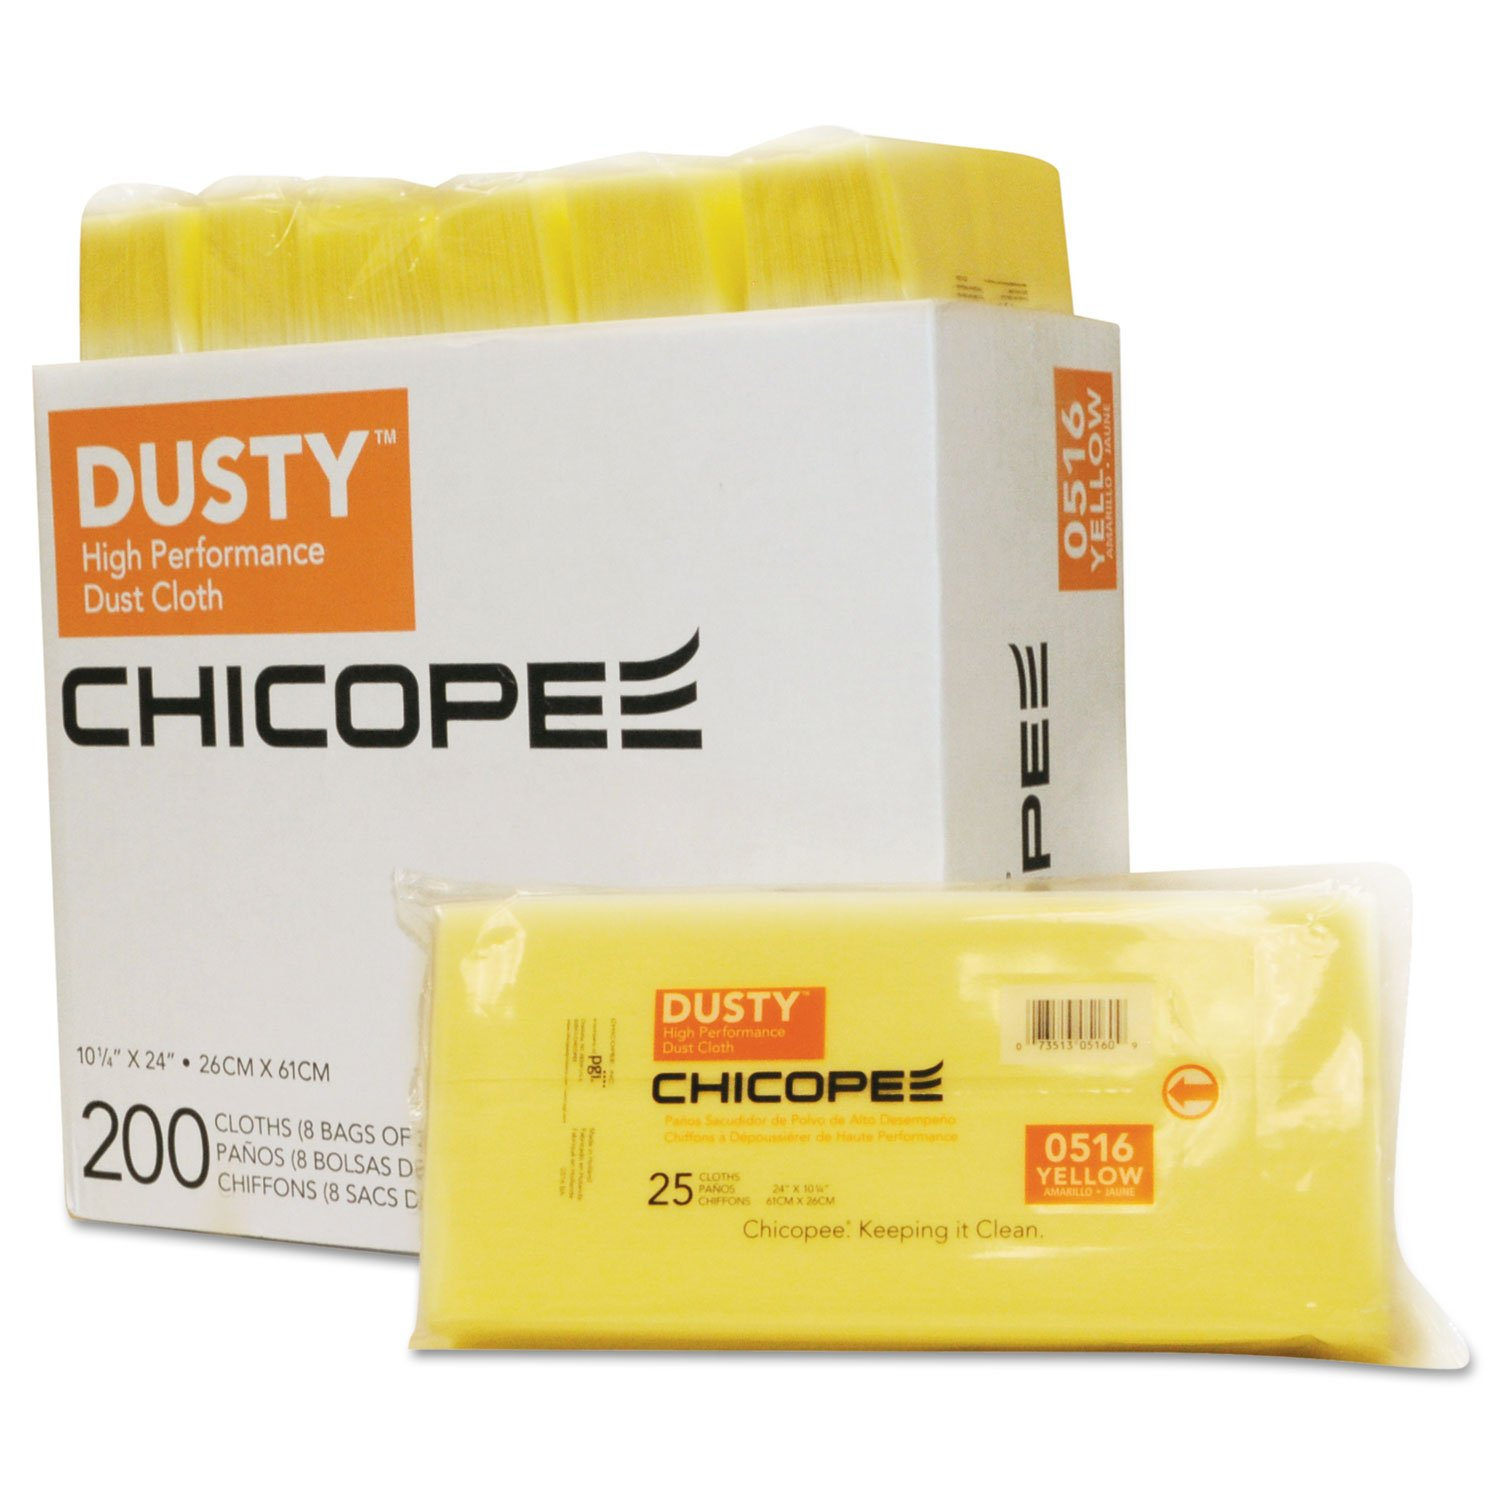 Amazon.com: DUSTY Disposable Dust Cloths, 10 1/4 x 24 ...